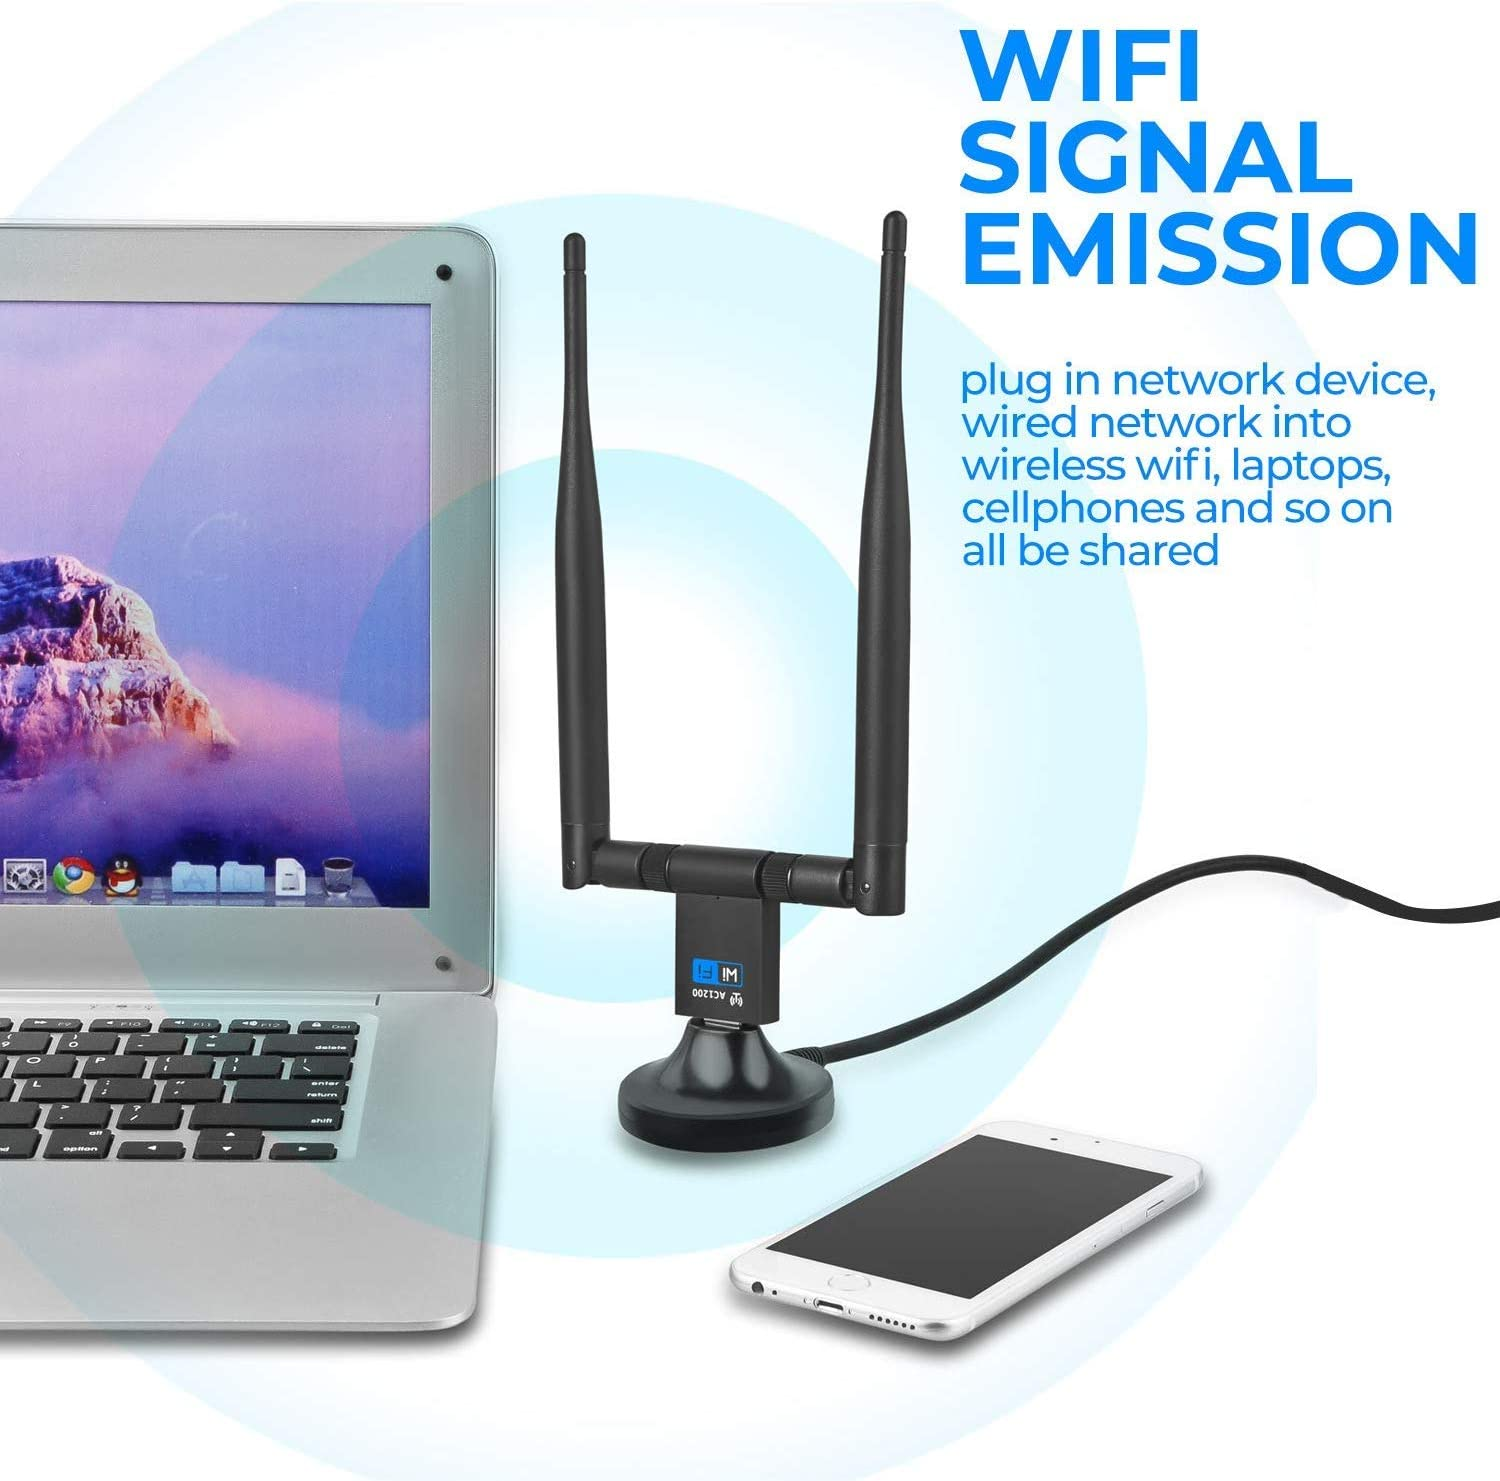 USB WiFi Adapter for PC Latest Long Range Stable Signal 1200Mbps Wireless WiFi Dongle USB 3.0 2.4G//5G 802.11ac Network Adapter with Dual Antenna for Windows XP//10//8//8.1//7//Vista Mac 10.6-10.15,Linux